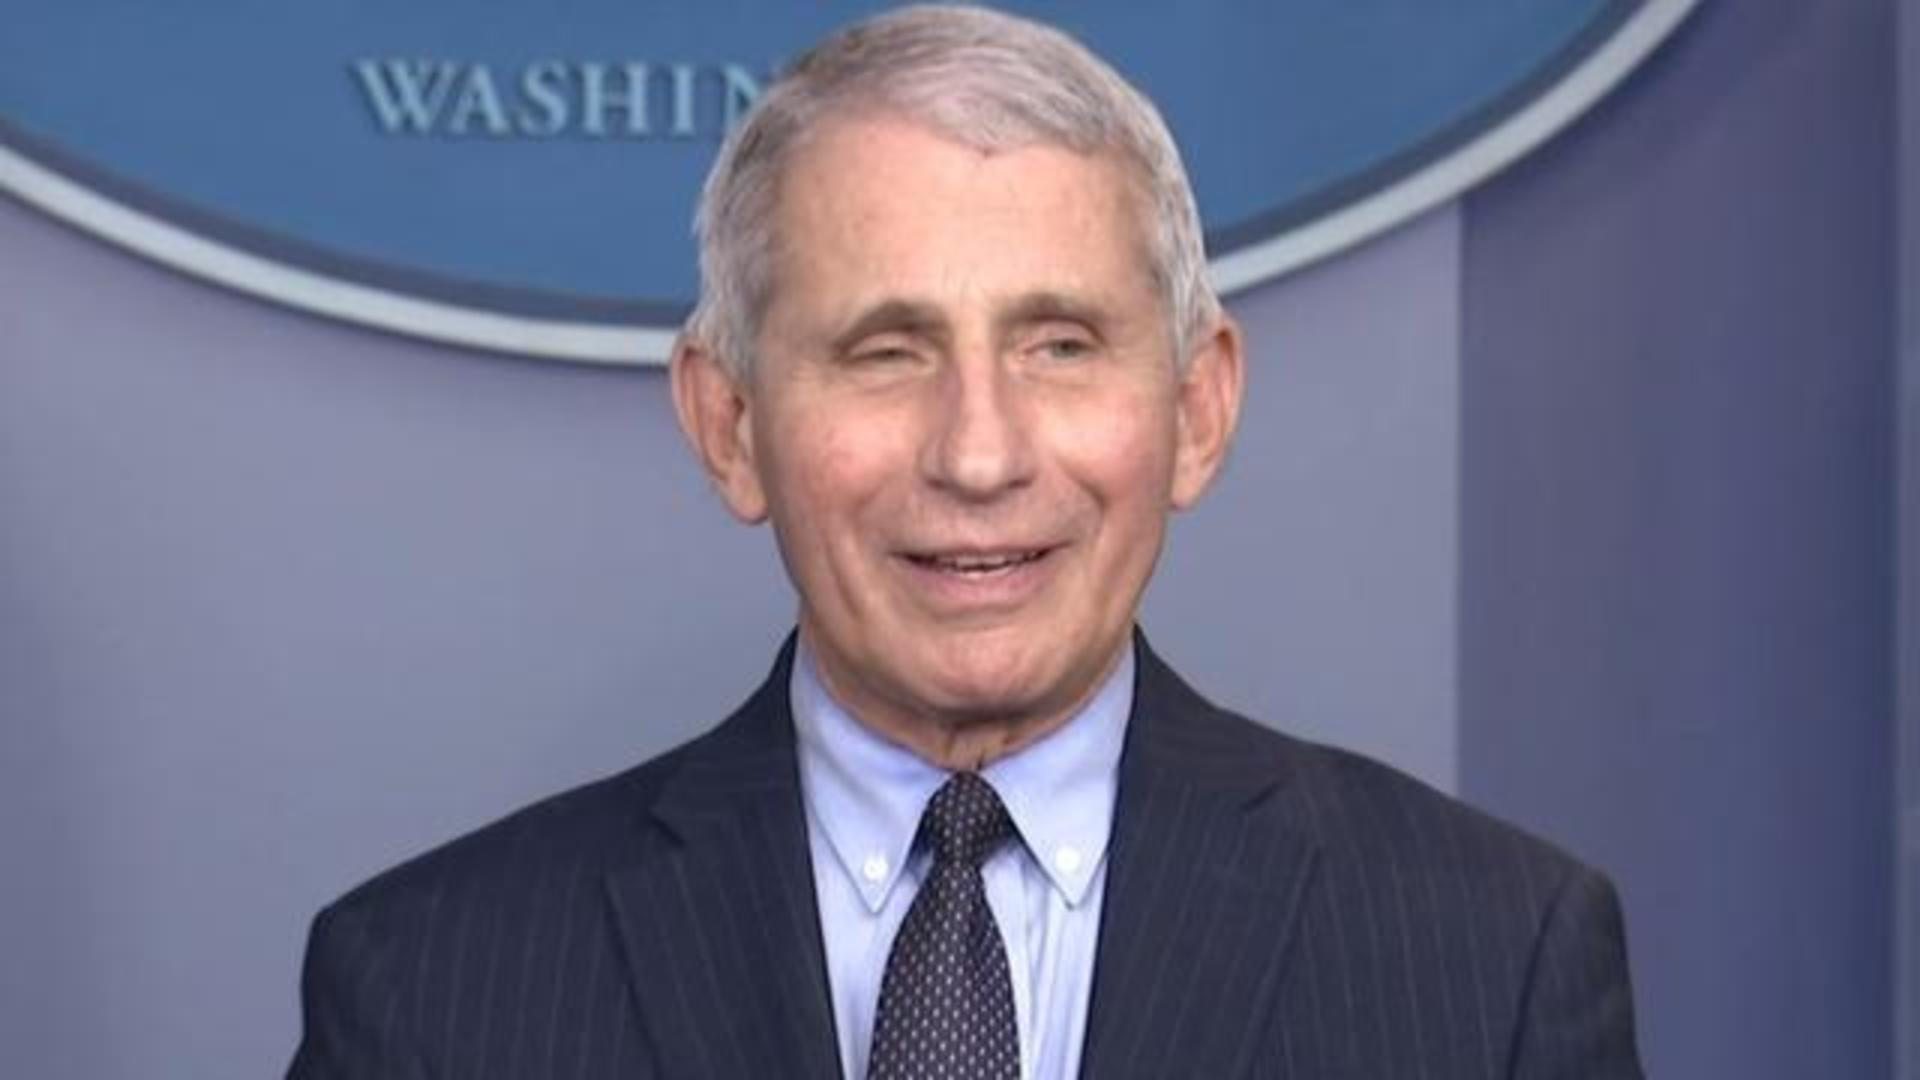 Dr. Anthony Fauci returns to White House press briefing to give update on  COVID-19 response - CBS News